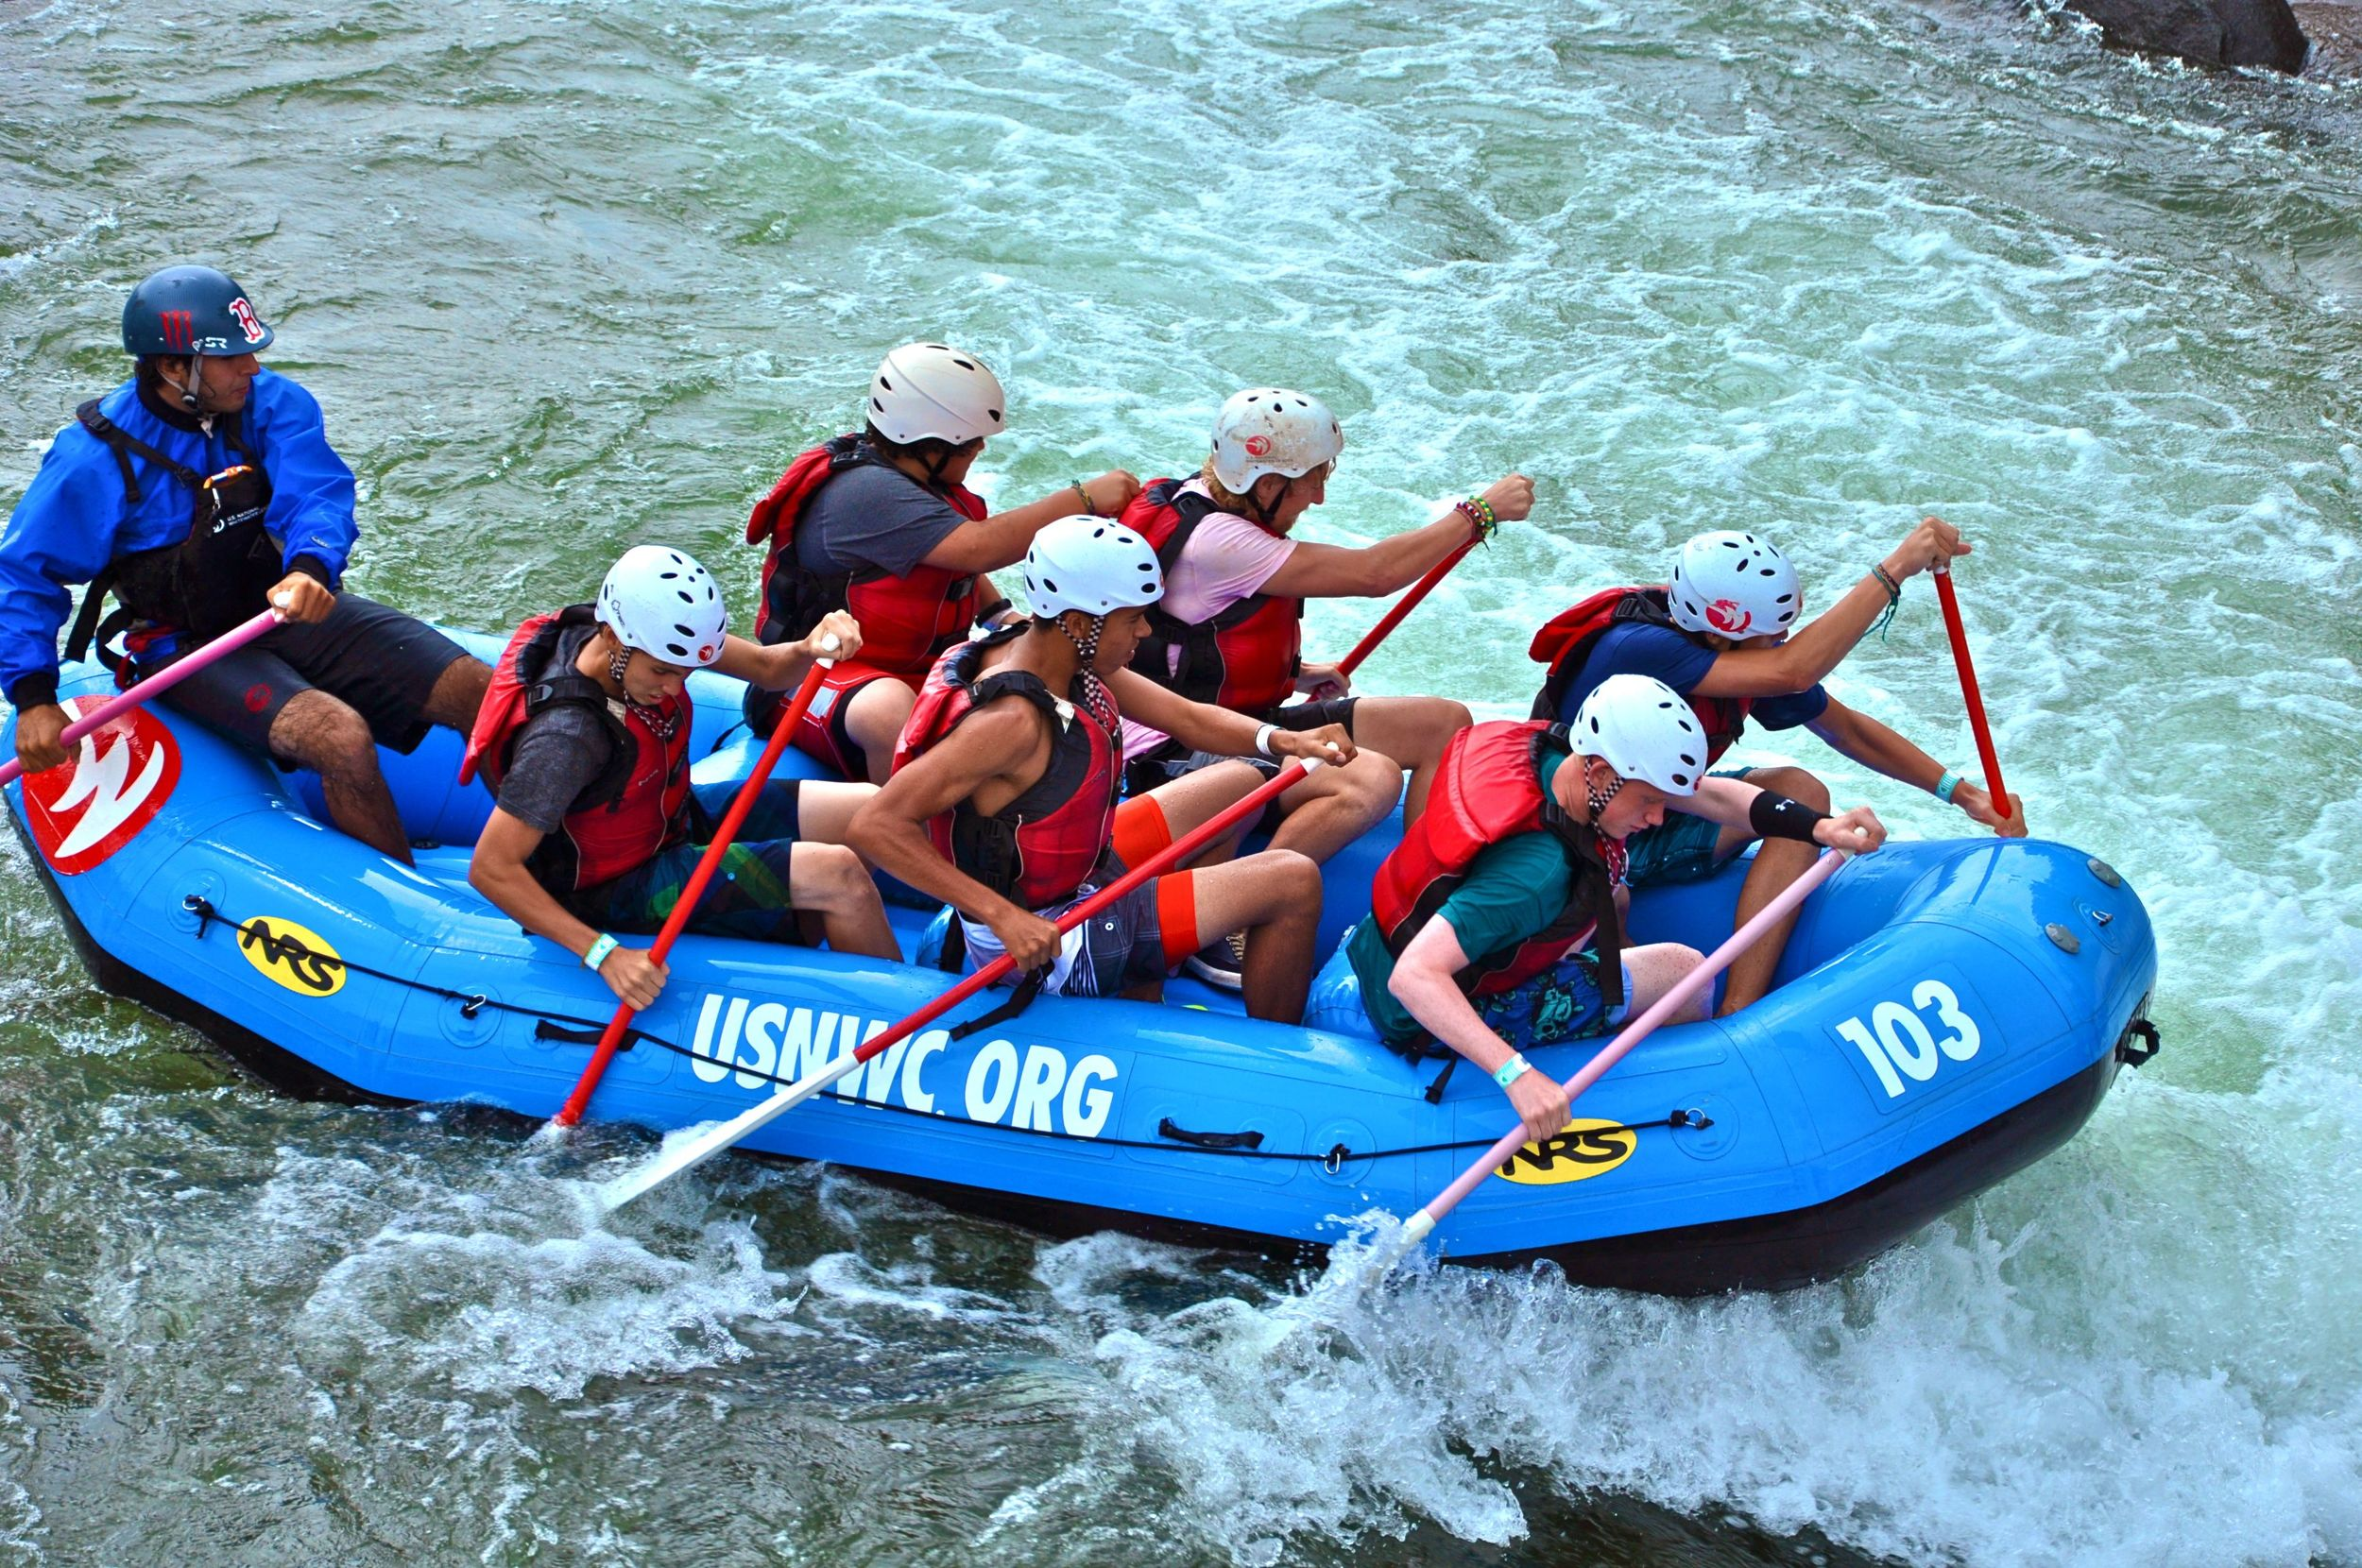 bruce-travis-greg-rob-olson-and-chase-power-into-the-rapids-for-a-speedy-trip-down-the-man-made-river.jpg